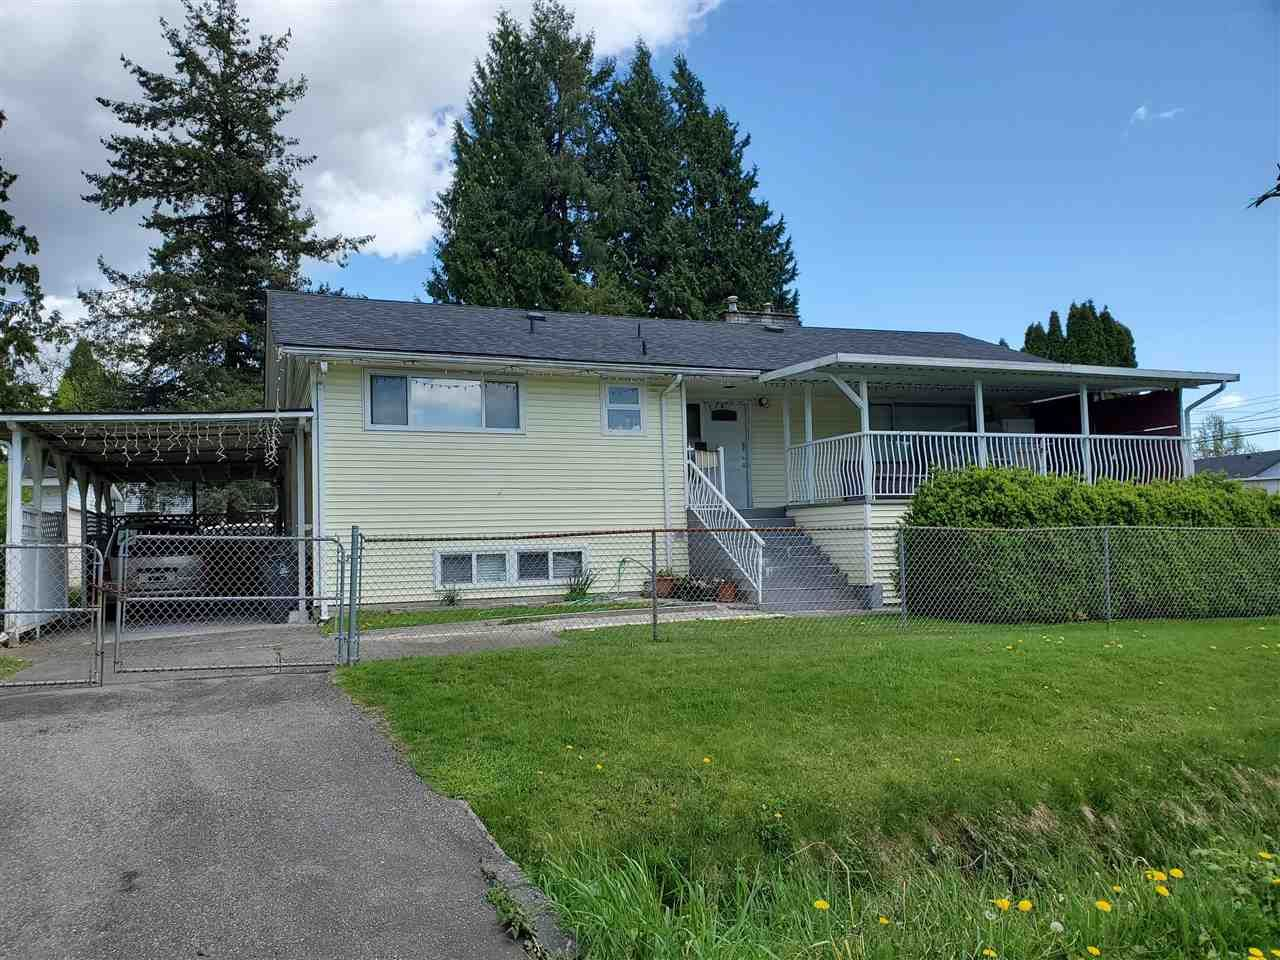 Main Photo: 13763 92 Avenue in Surrey: Bear Creek Green Timbers House for sale : MLS®# R2579129